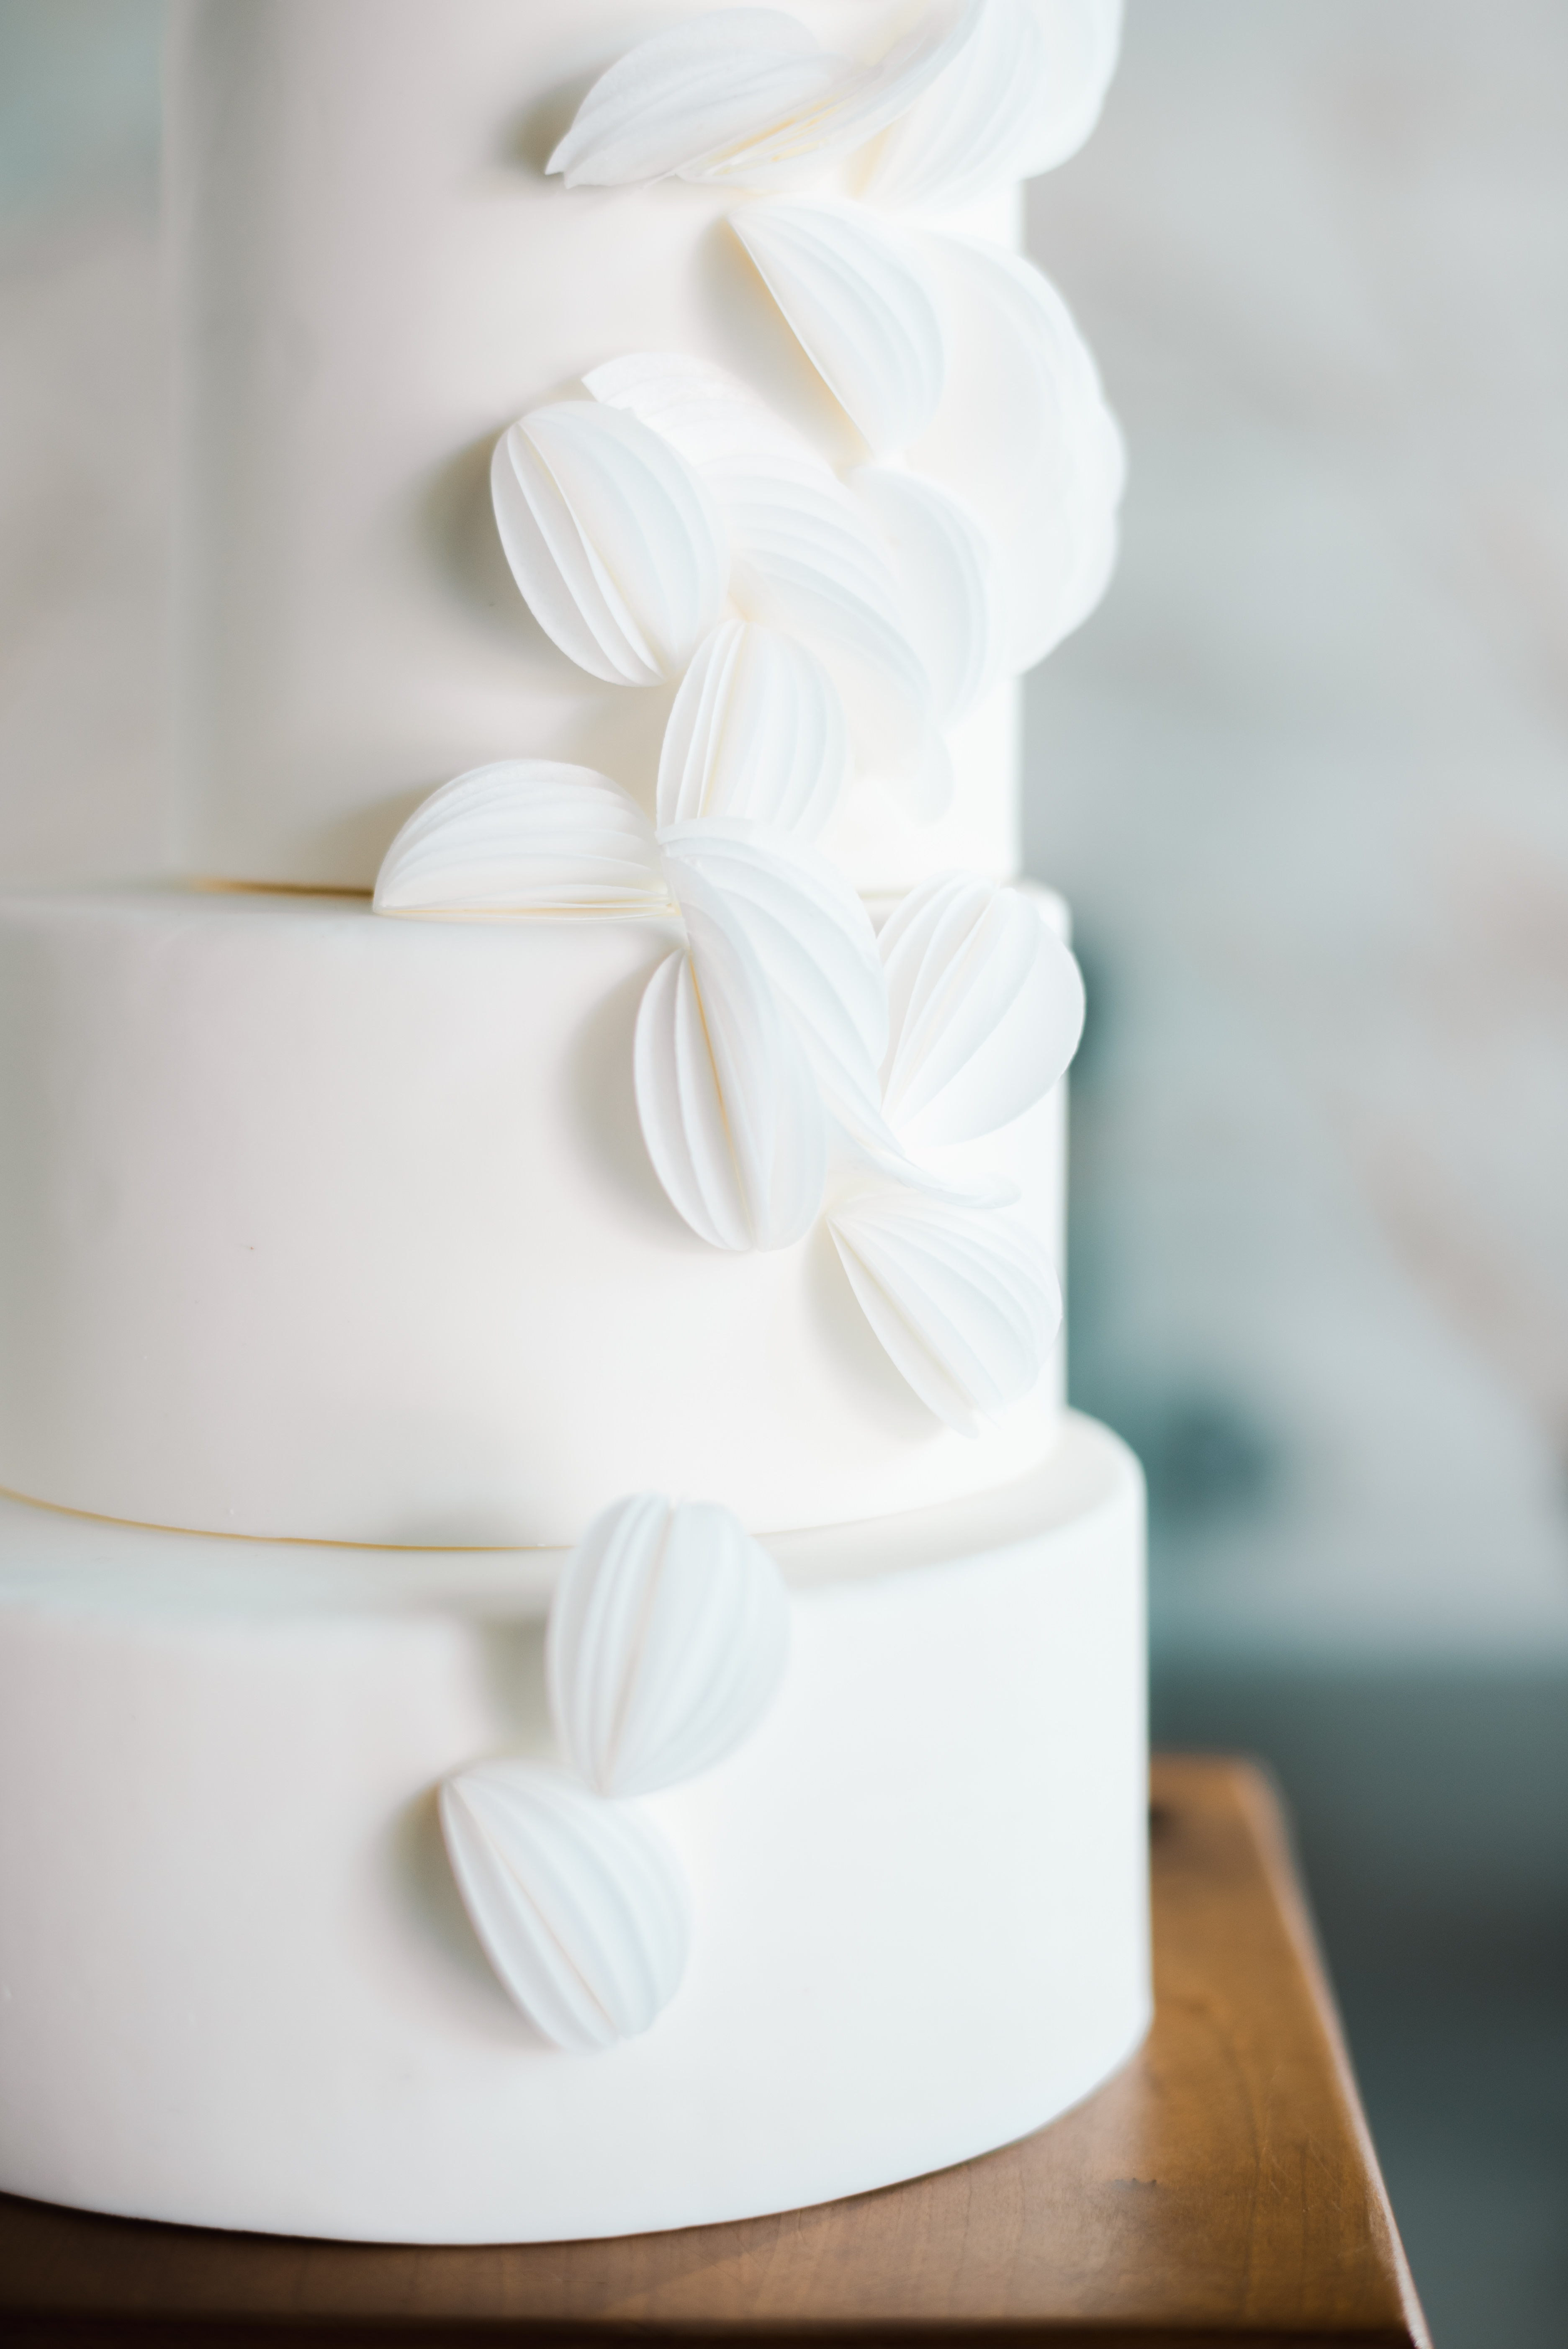 Details of rice paper on white wedding cake